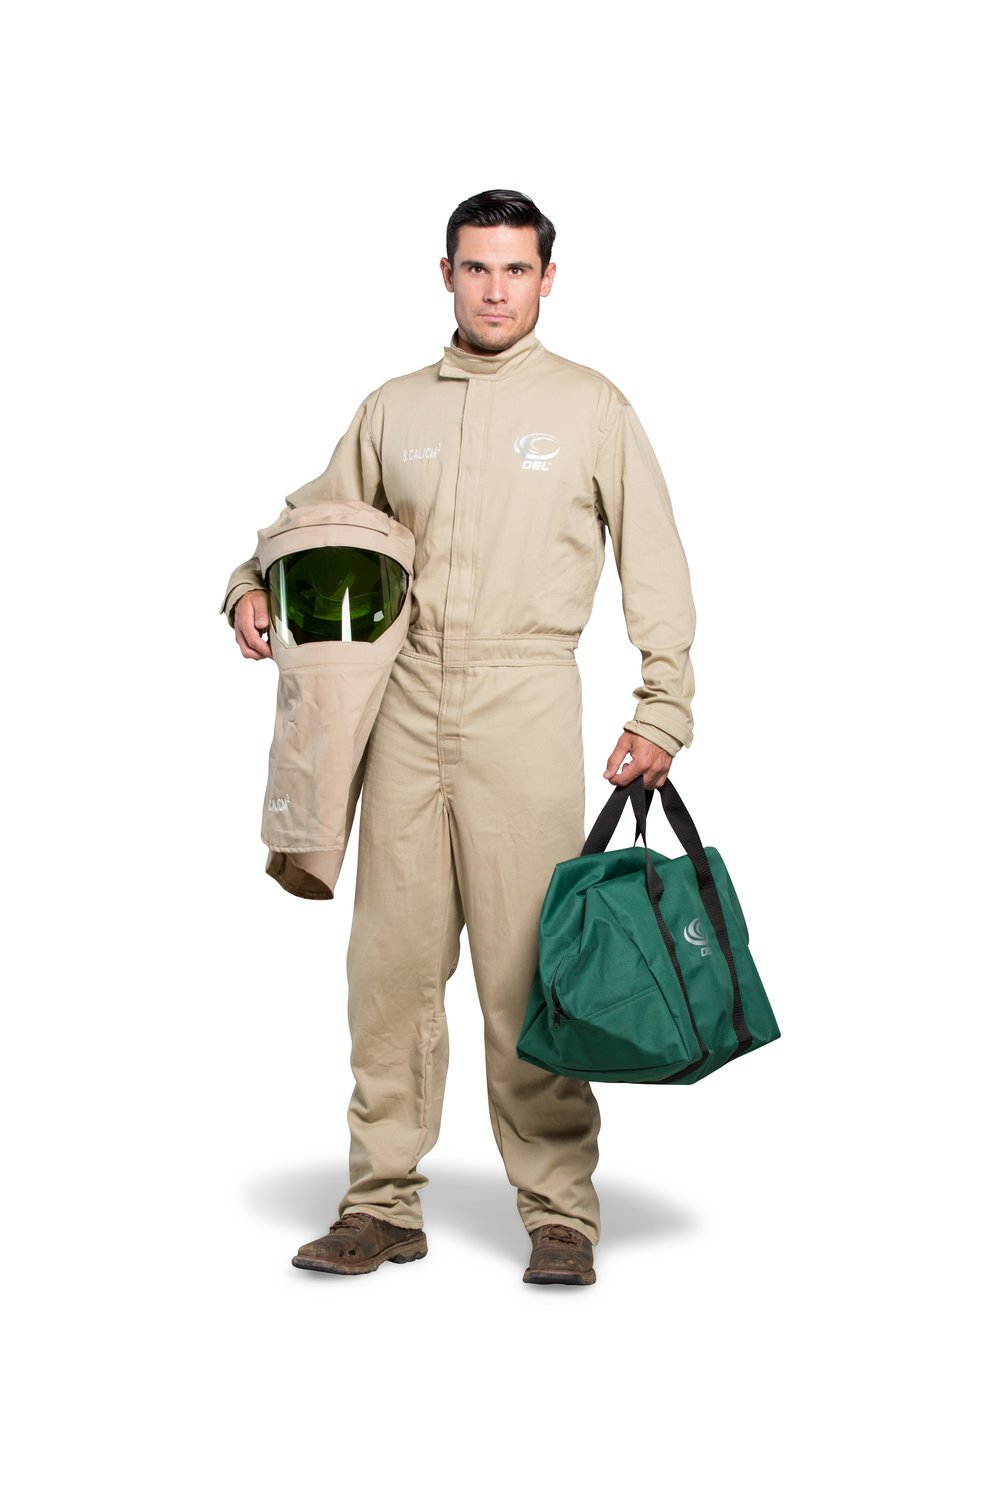 8 Cal Coverall Kit with SwitchGear Hood